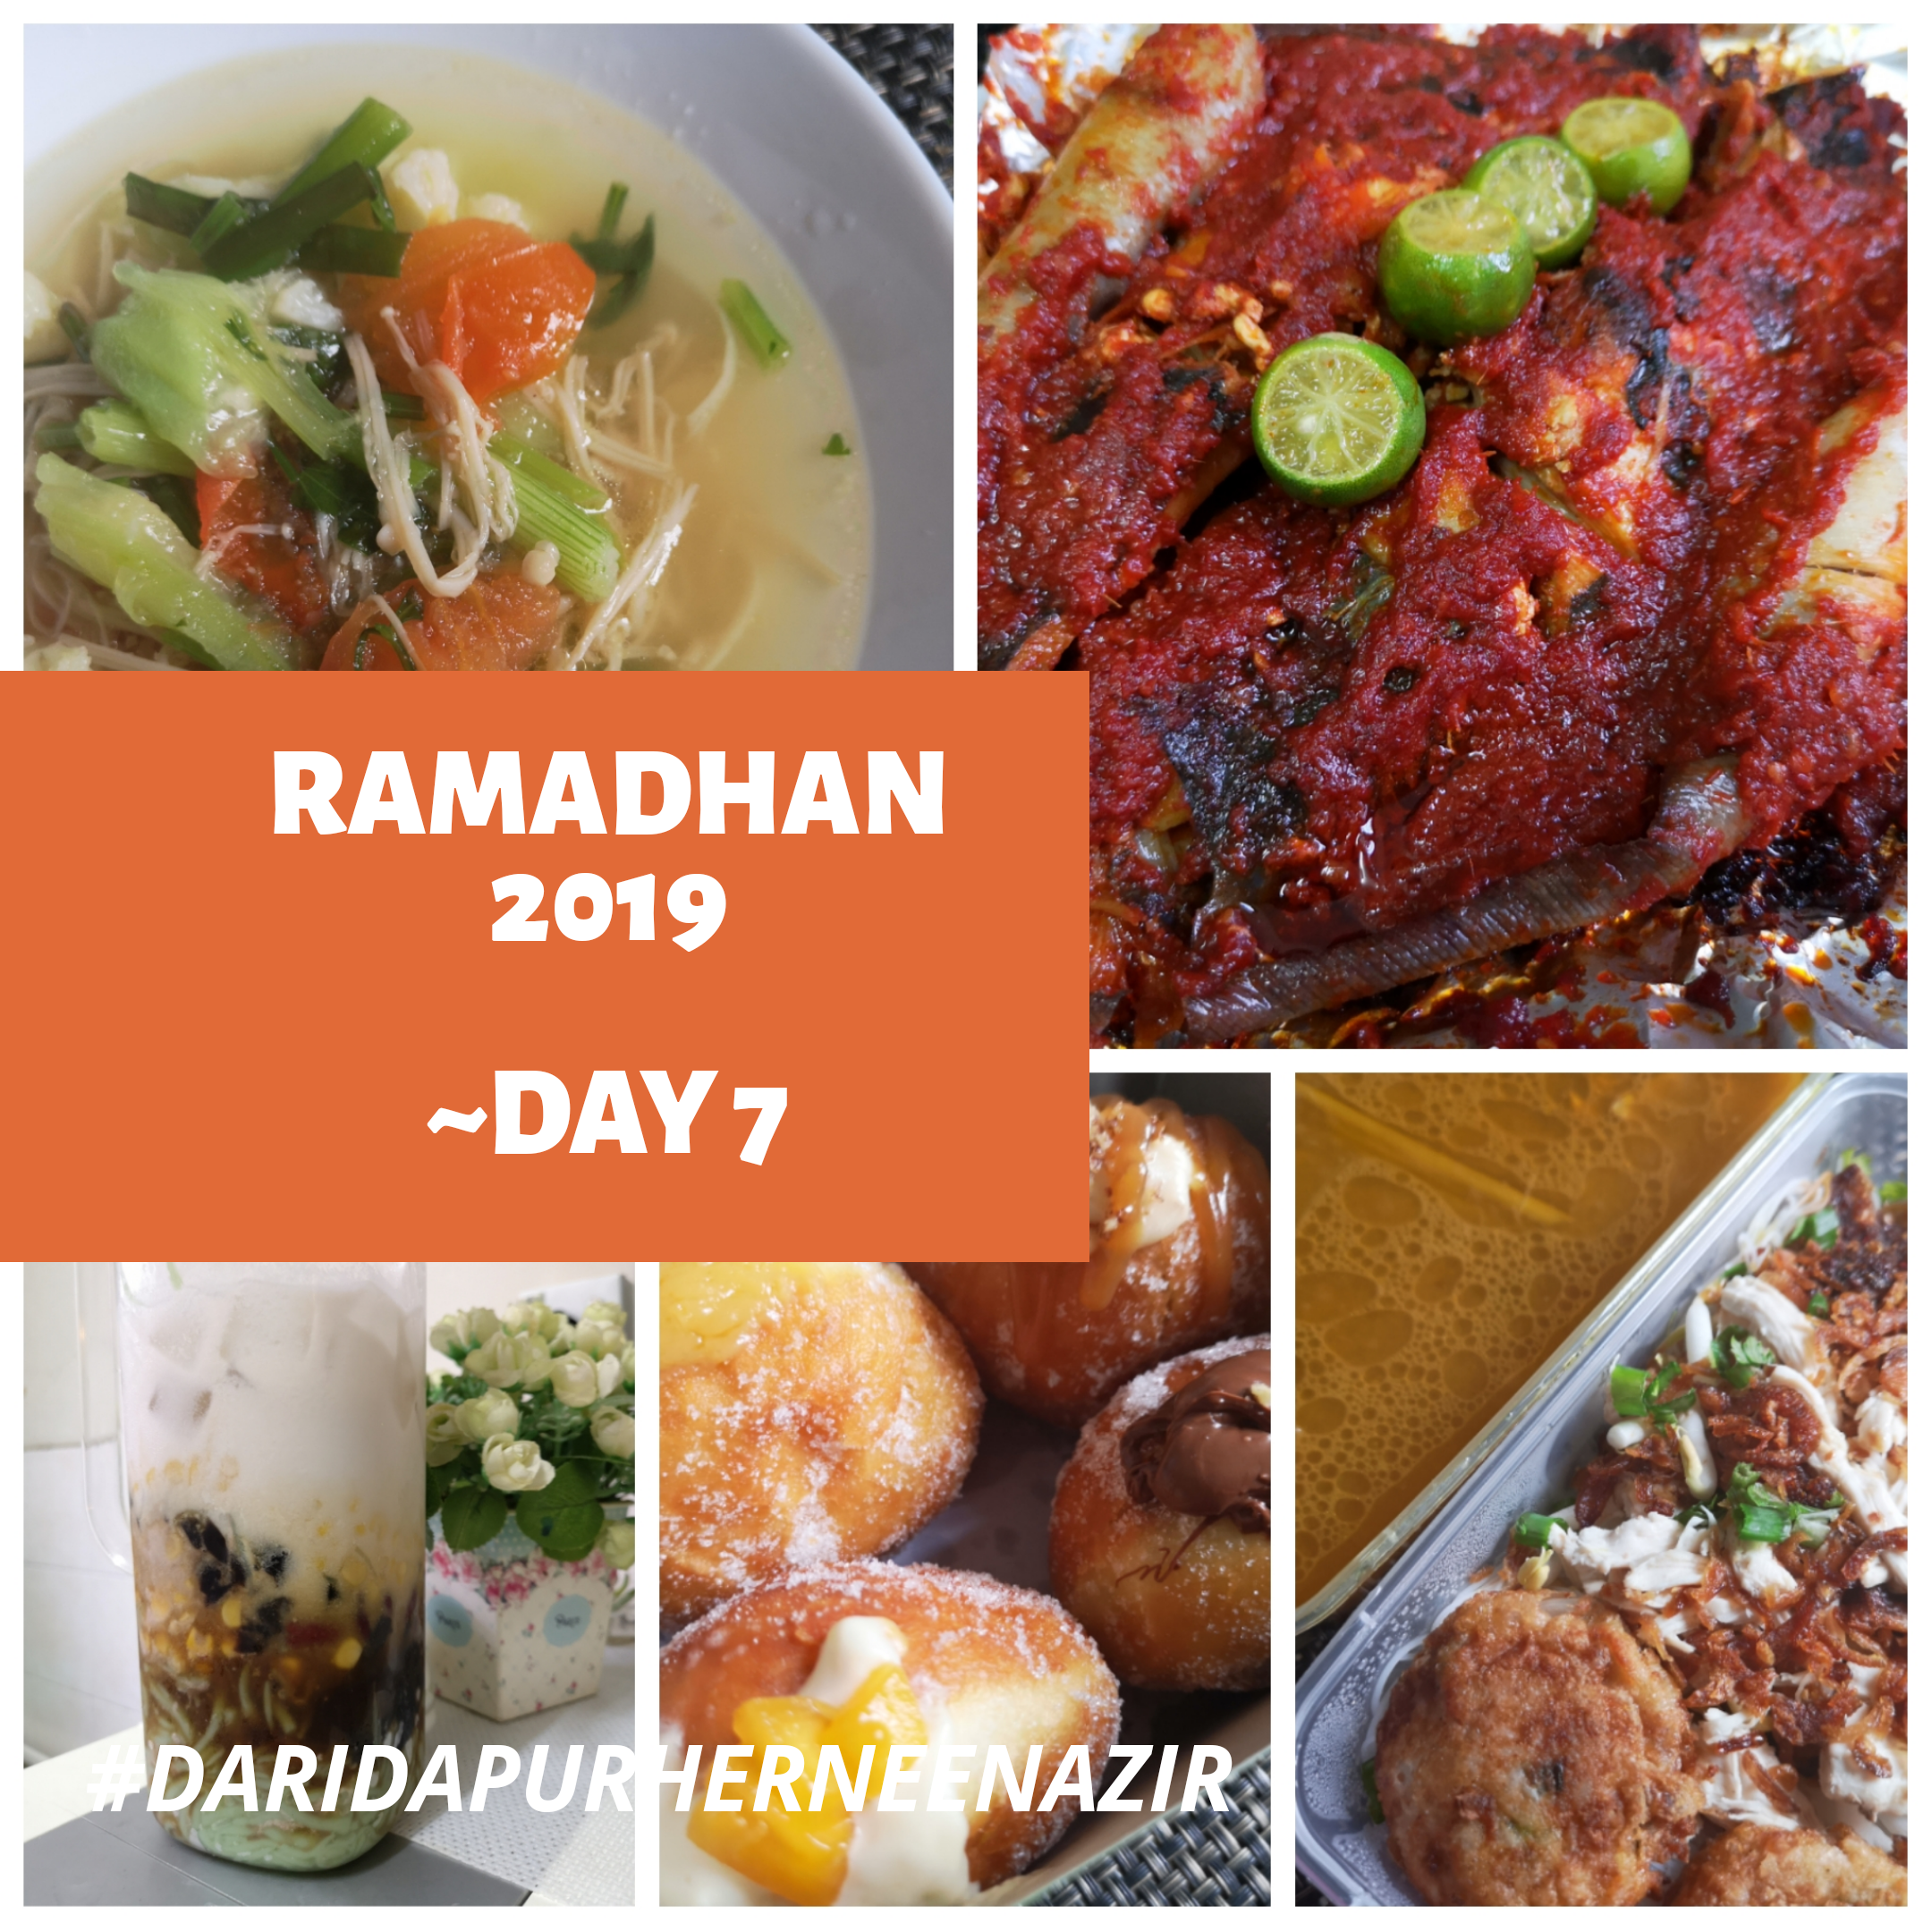 Ramadhan 2019 – Day 7